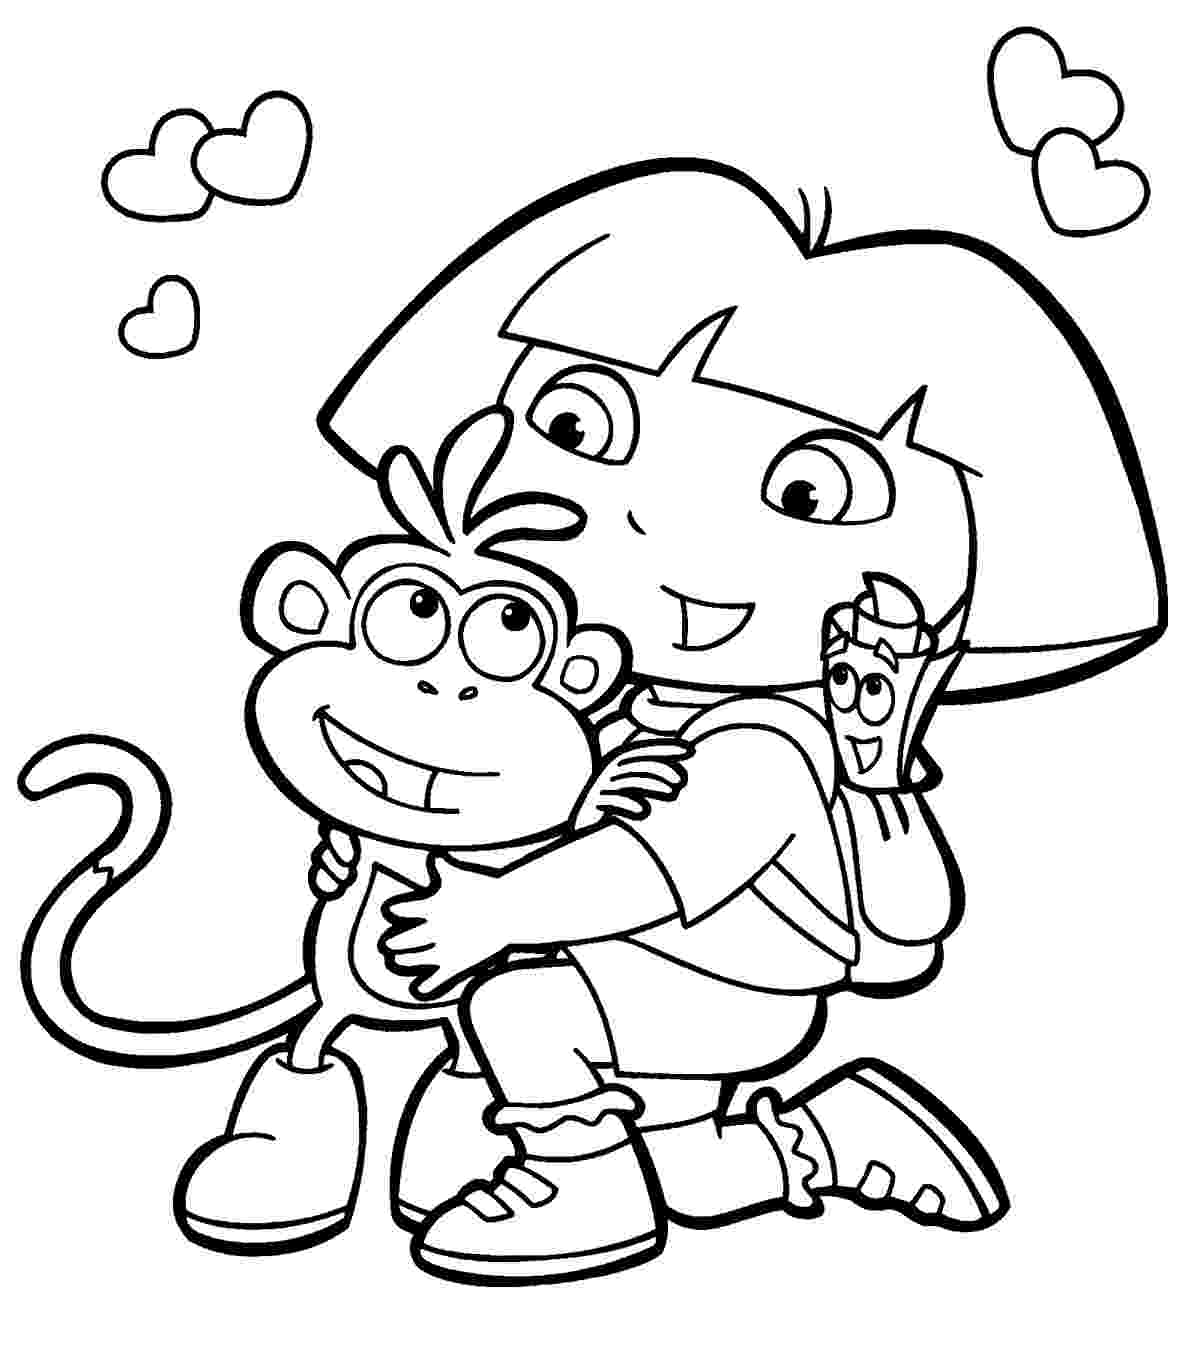 dora the explorer coloring dora coloring pages cutecoloringcom coloring explorer the dora